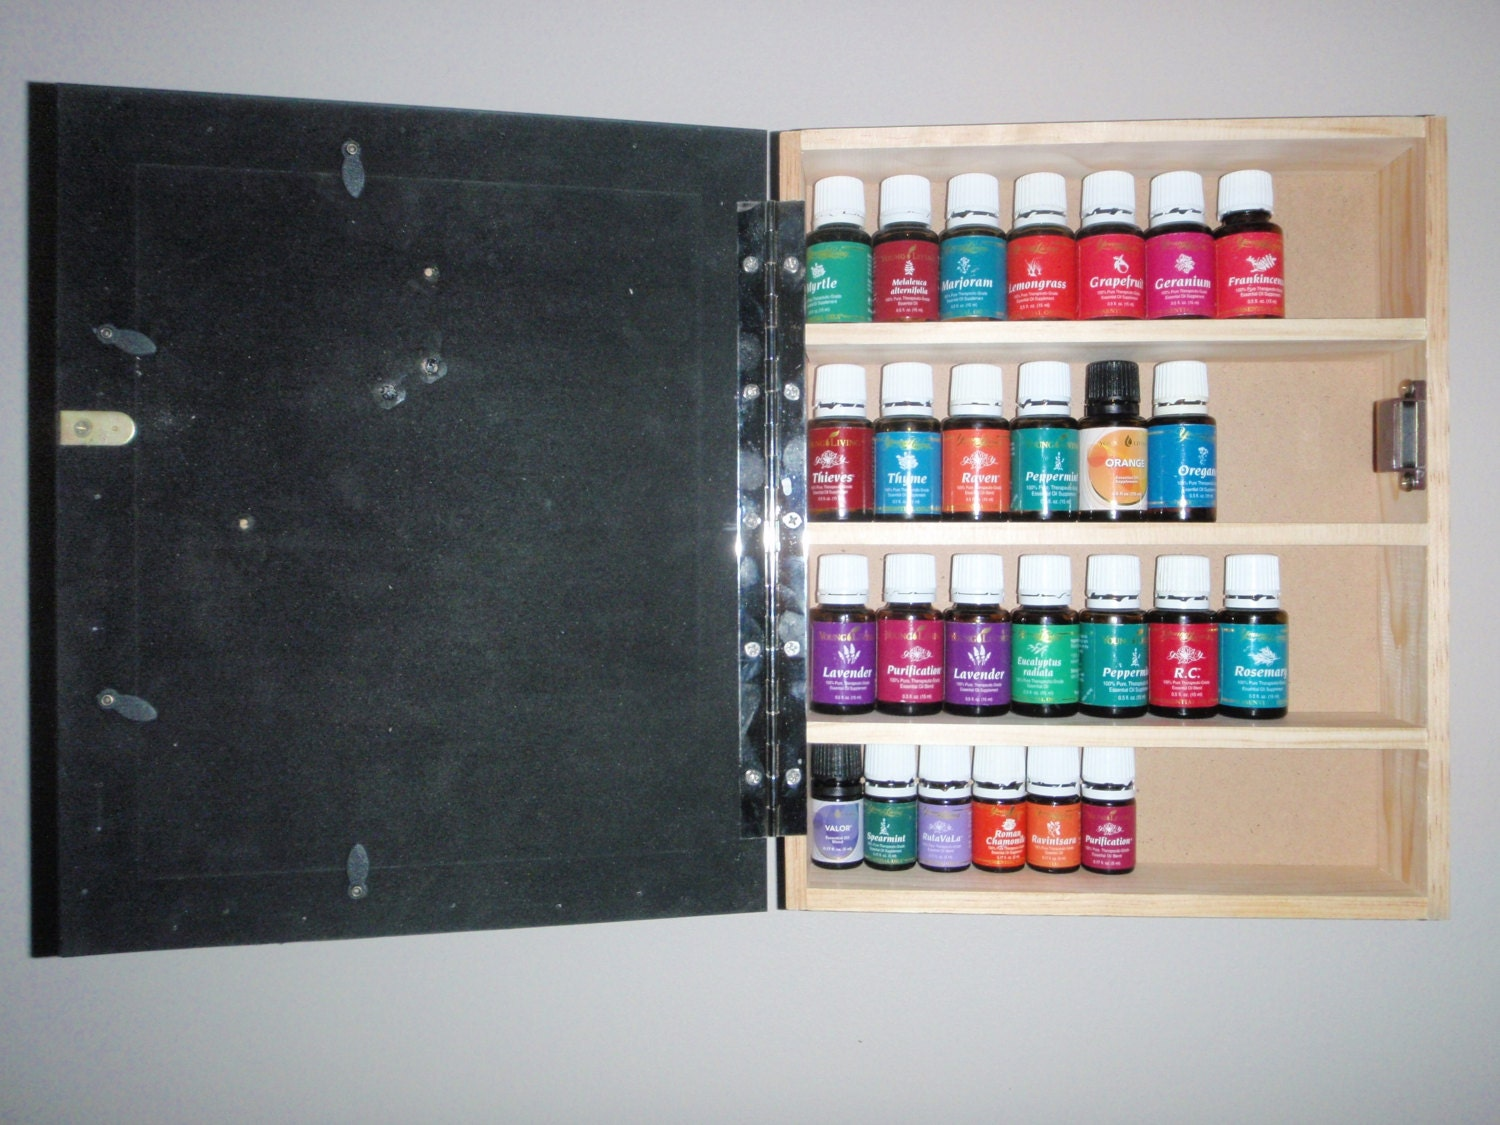 Superb img of essential oil cabinet wood shelf rack storage wall by ByStichbtch with #A62530 color and 1500x1125 pixels